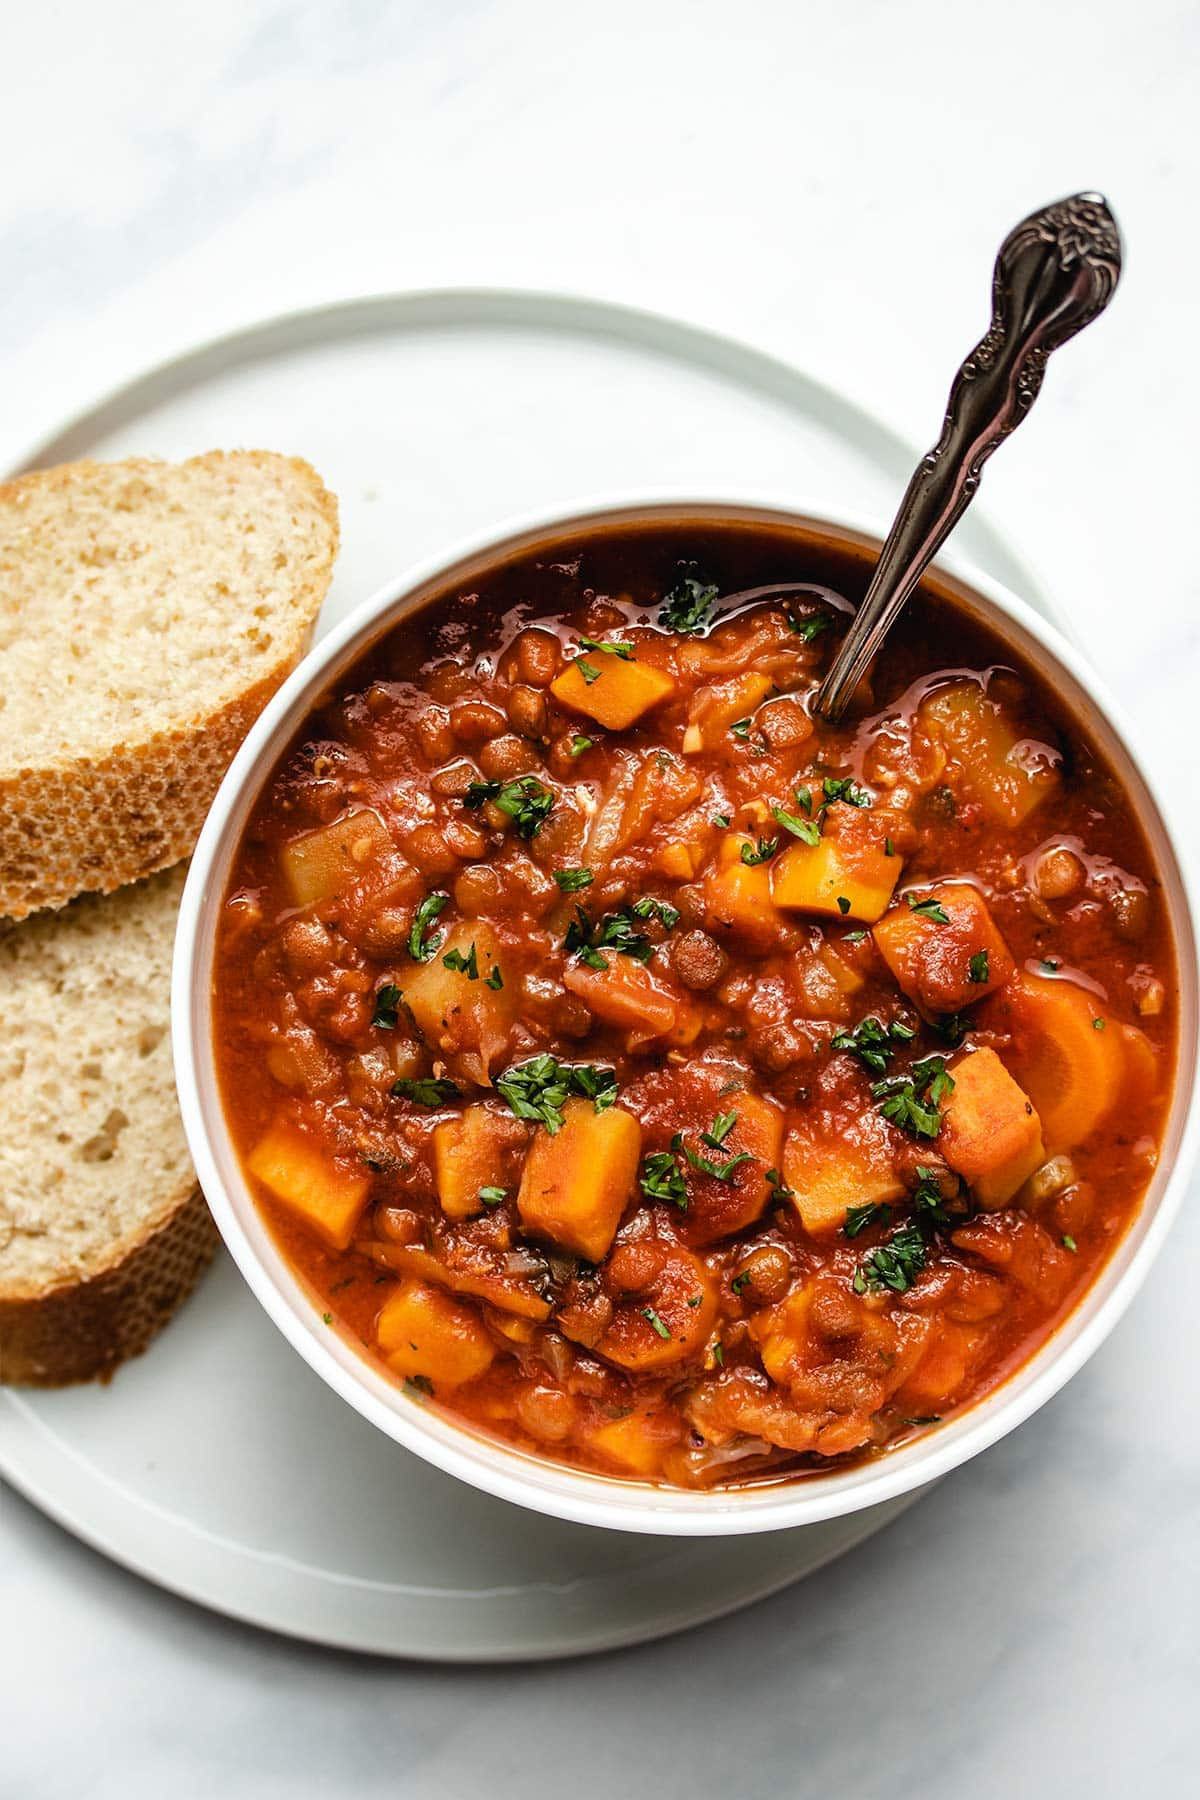 Lentil soup in a white bowl garnished with fresh parsley, on top of a white plate with two slices of crusty bread.